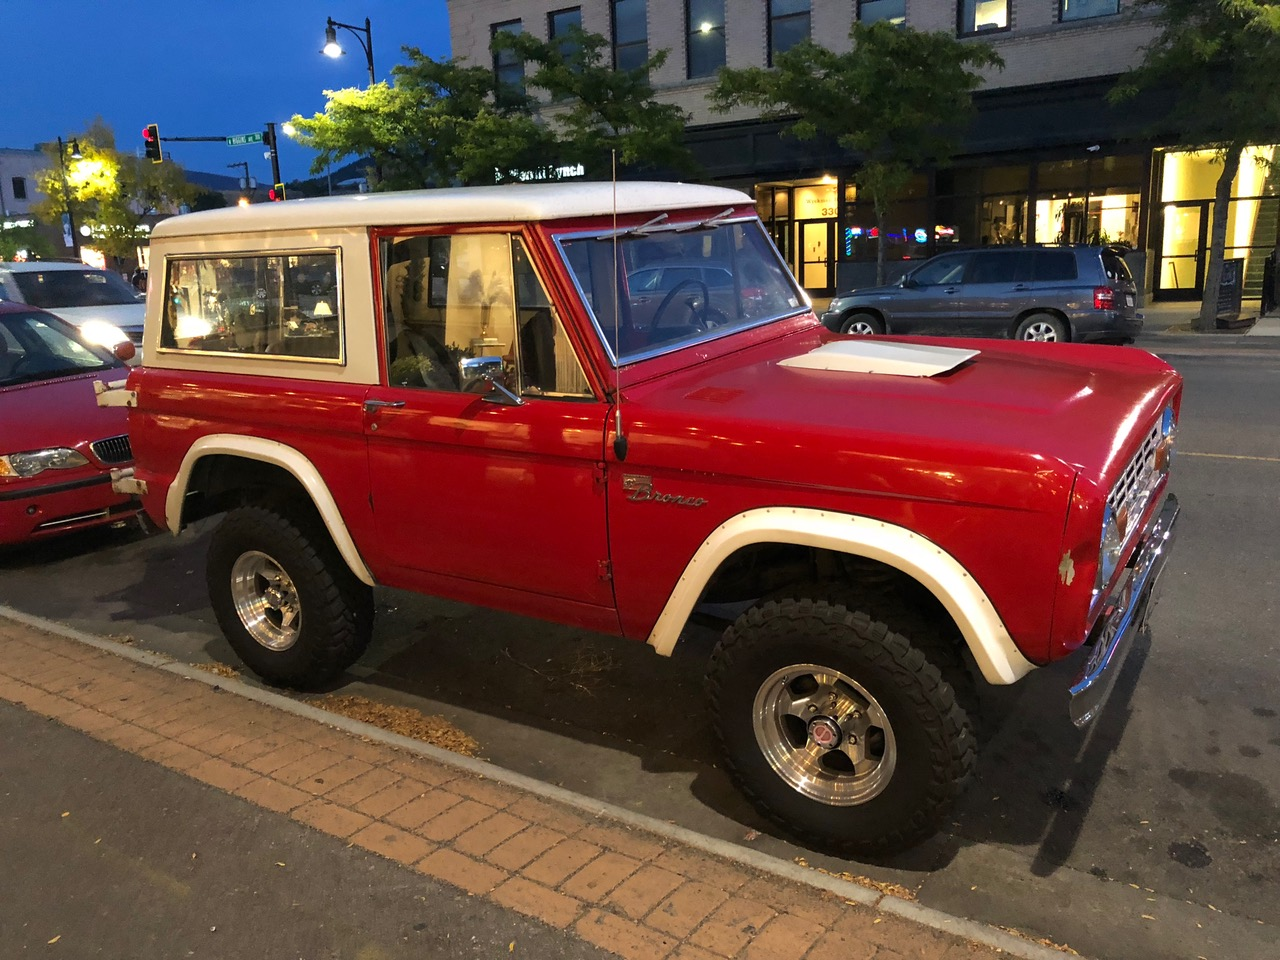 A typical old U.S. Jeep...